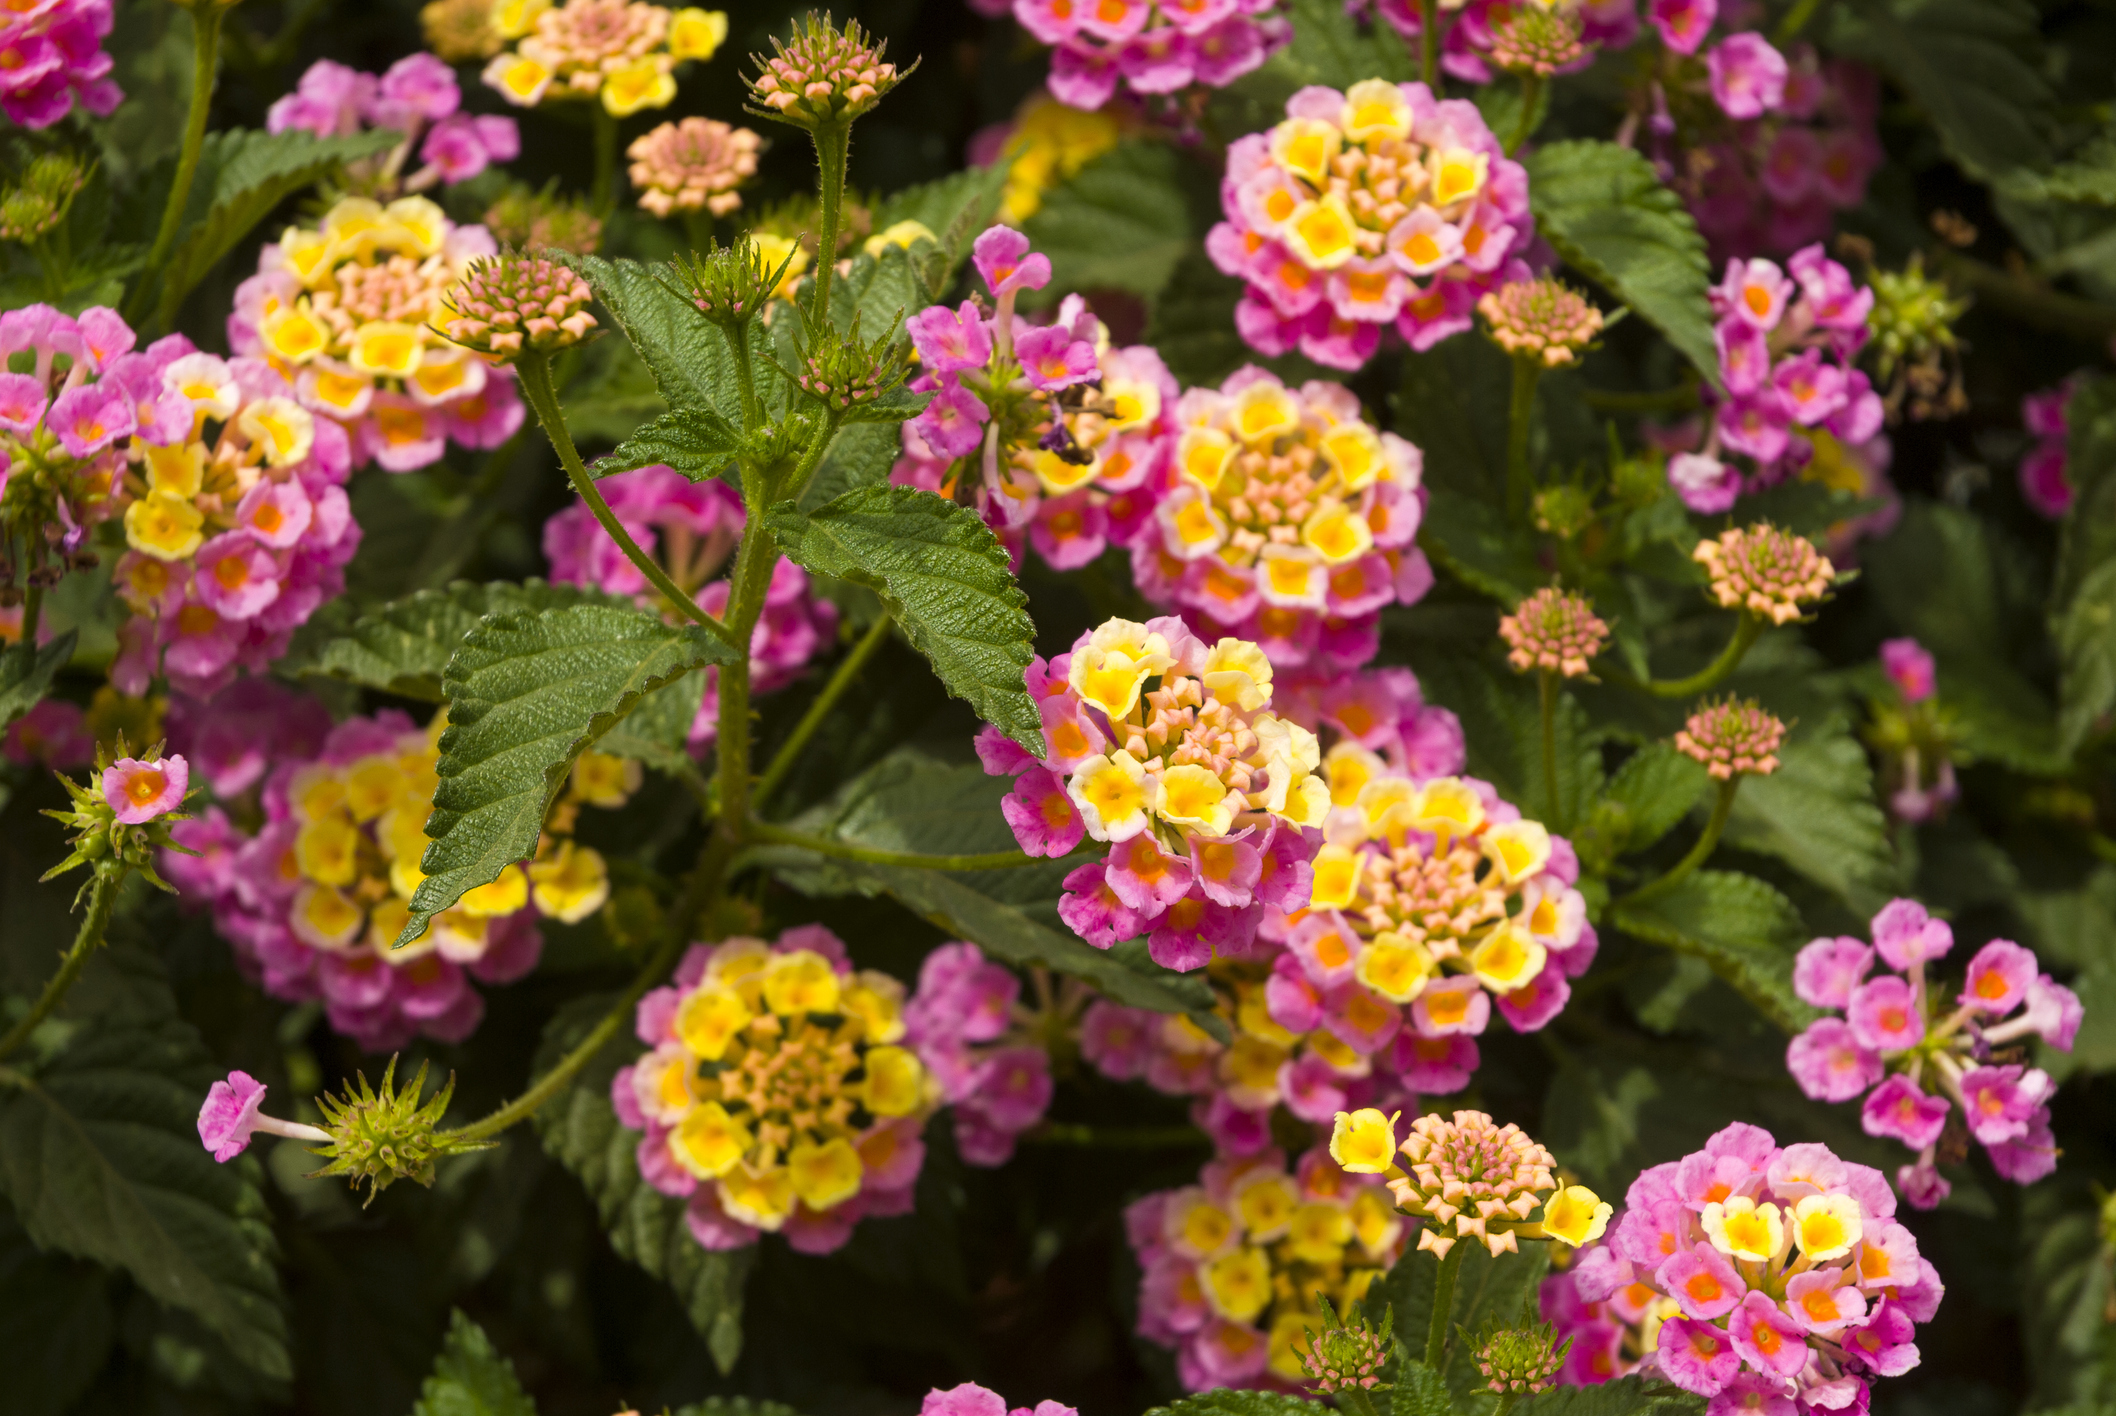 Lantana - Lantana is a perennial in zones 9-10 but in our zone 7 (Asheville is a zone 7, with higher elevations going as low as 5) we treat it as an annual. it is used in hanging baskets, containers and for a big pop of color in the landscape, often around mailboxes. It has vibrant blooms, and is upright and bushy or trailing. Lantana is planted alone or in combination with other annuals. It does sometimes reseed. It is drought resistant and butterflies love it.